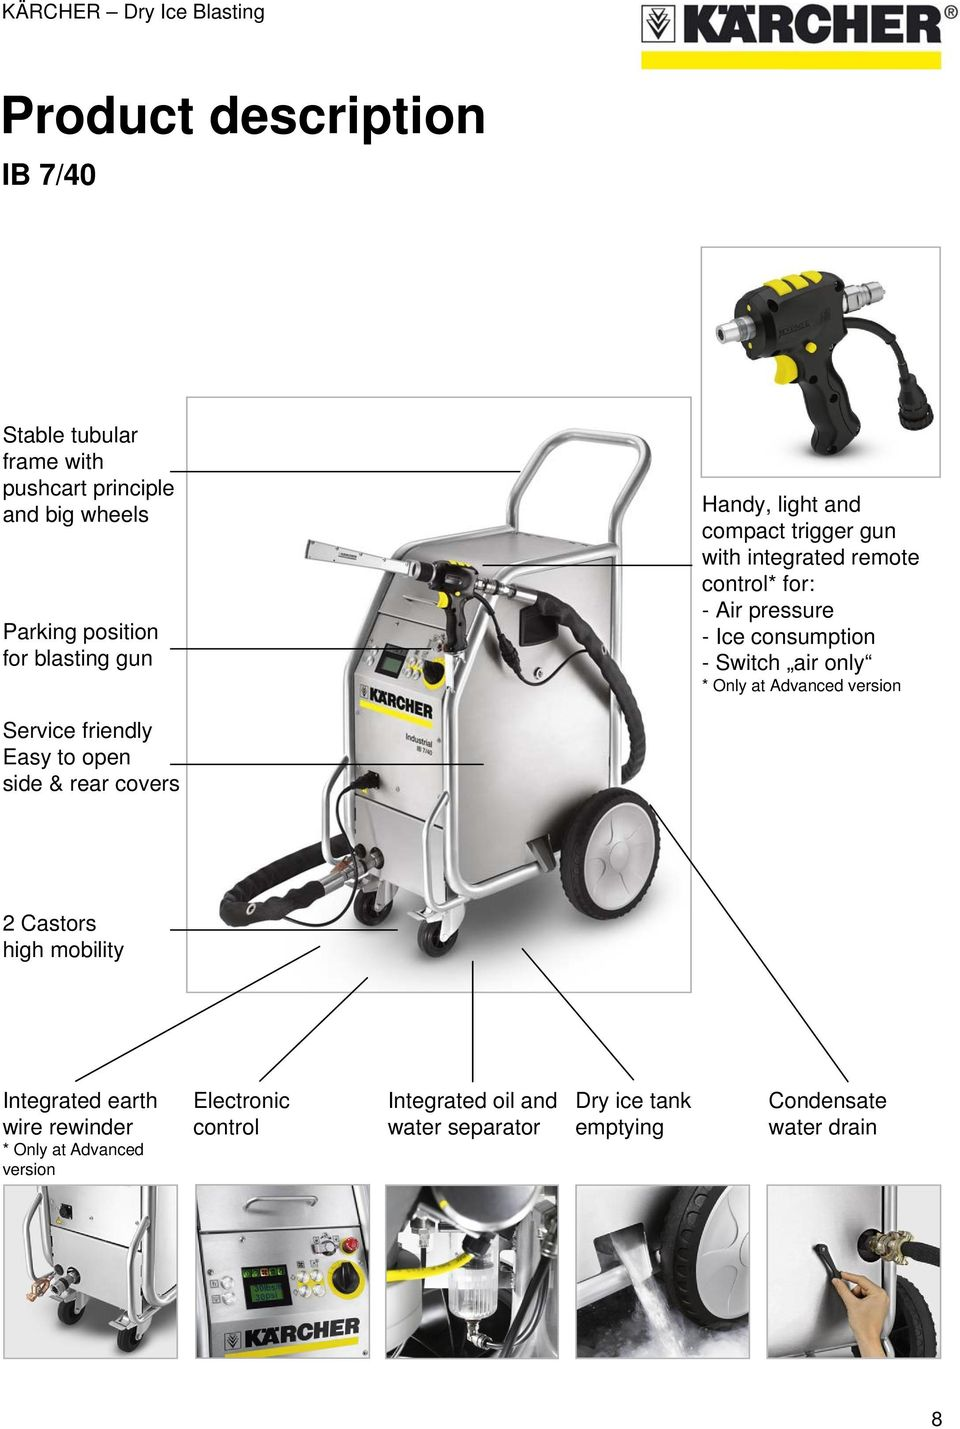 Krcher Dry Ice Blasting Pdf Drainage Pump Karcher Sp 3 Dirt Only At Advanced Version Service Friendly Easy To Open Side Rear Covers 2 Castors High